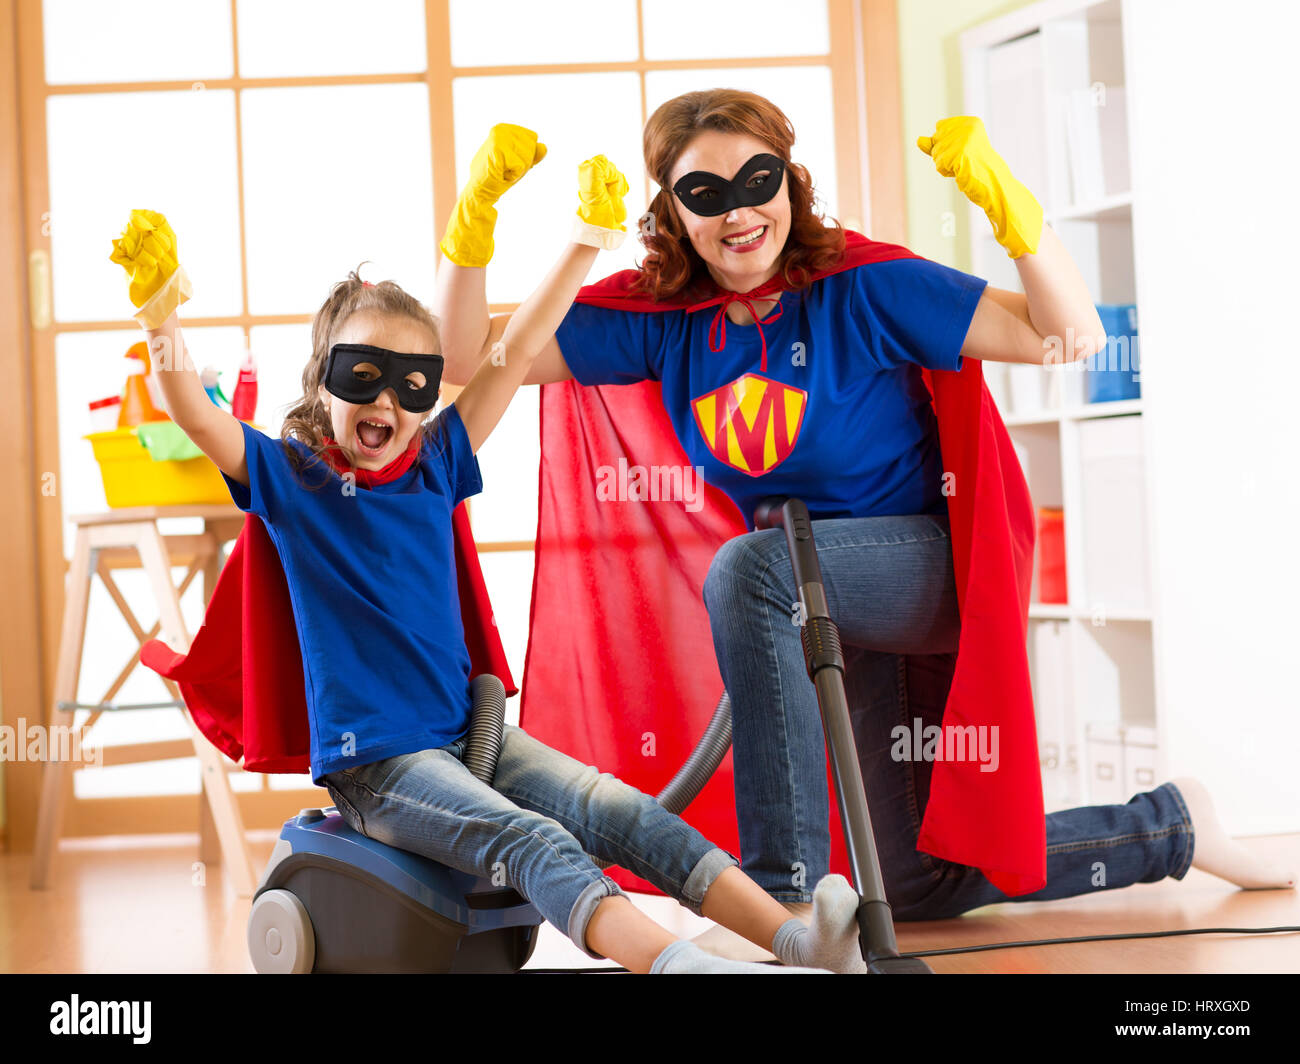 Strong superhero housewife and kid daughter ready to room cleaning. Housework and household concept. - Stock Image